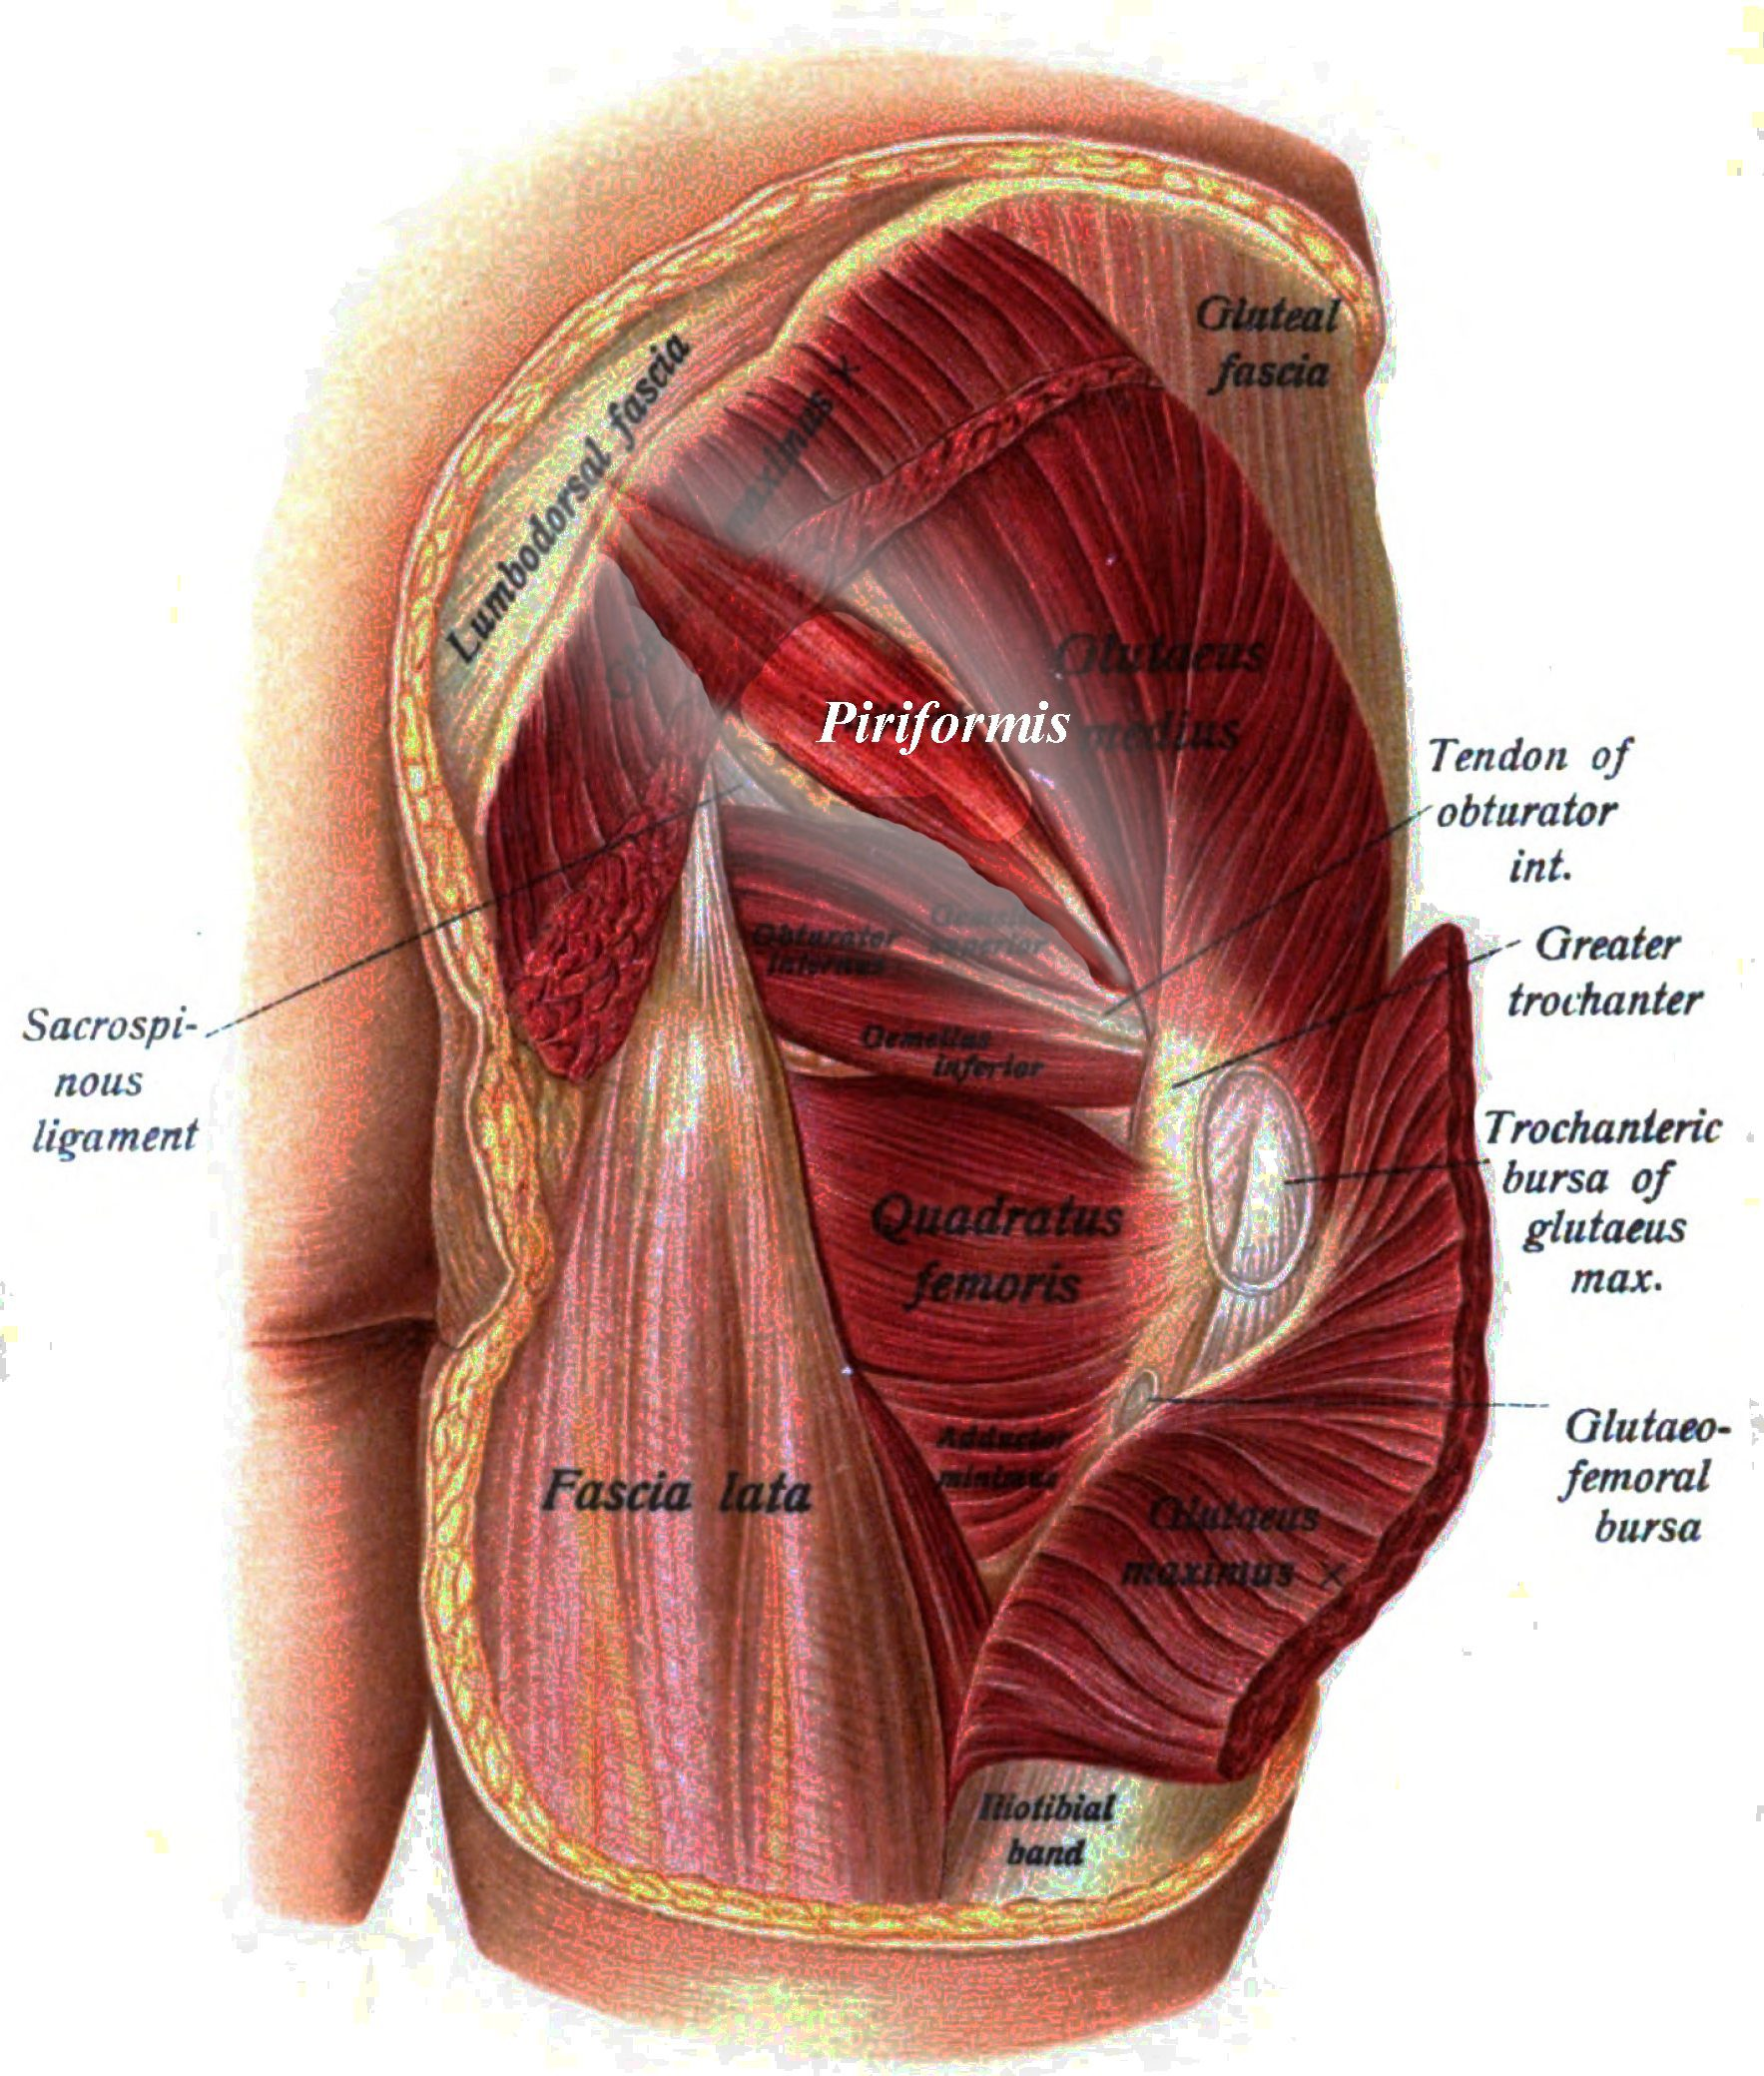 Causes du syndrome de Piriformis